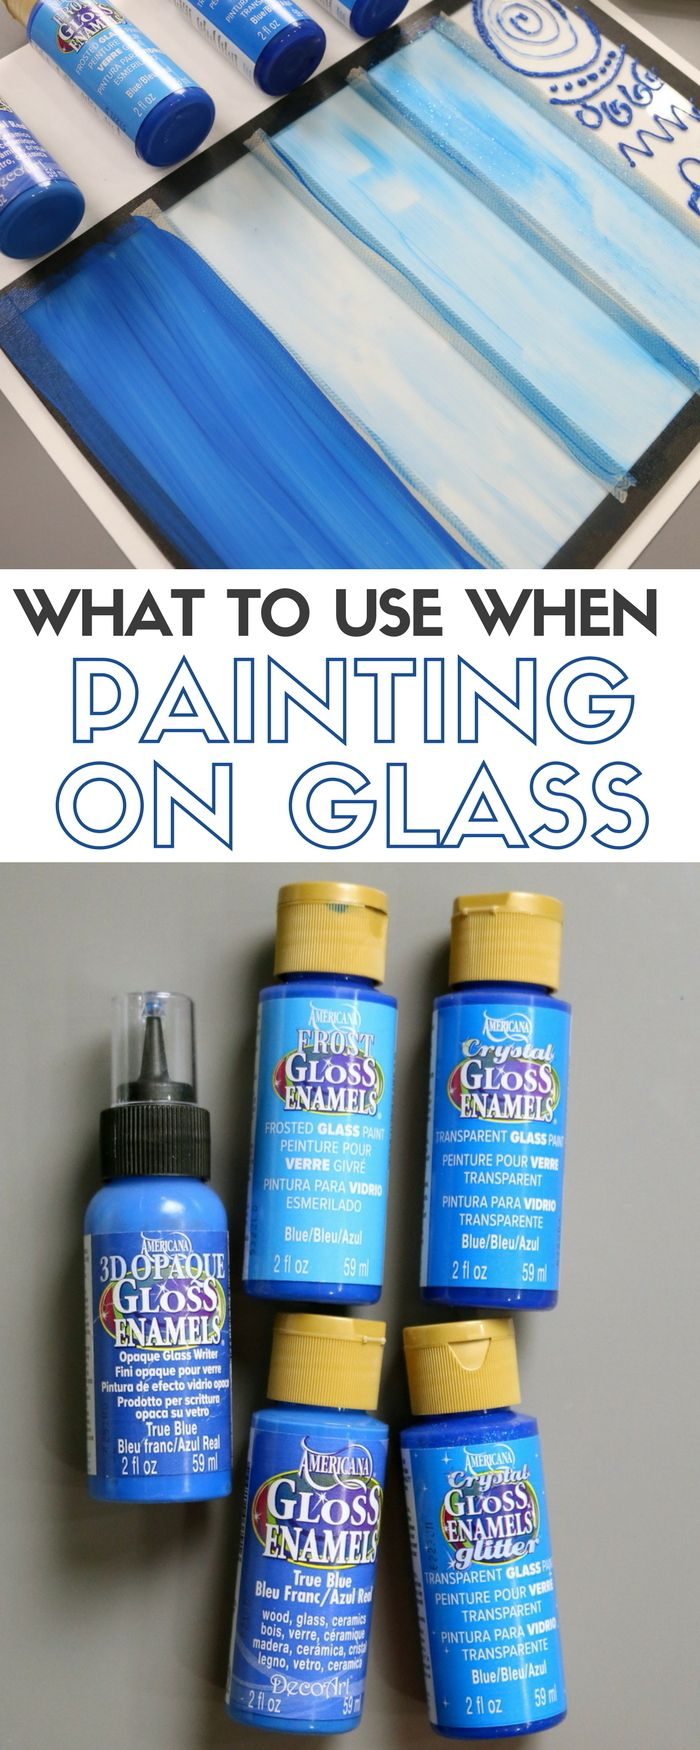 Learn What Gl Paint To Use When Painting On With American Gloss Enamels Paints An Easy Diy Craft Tutorial Idea Get You Started